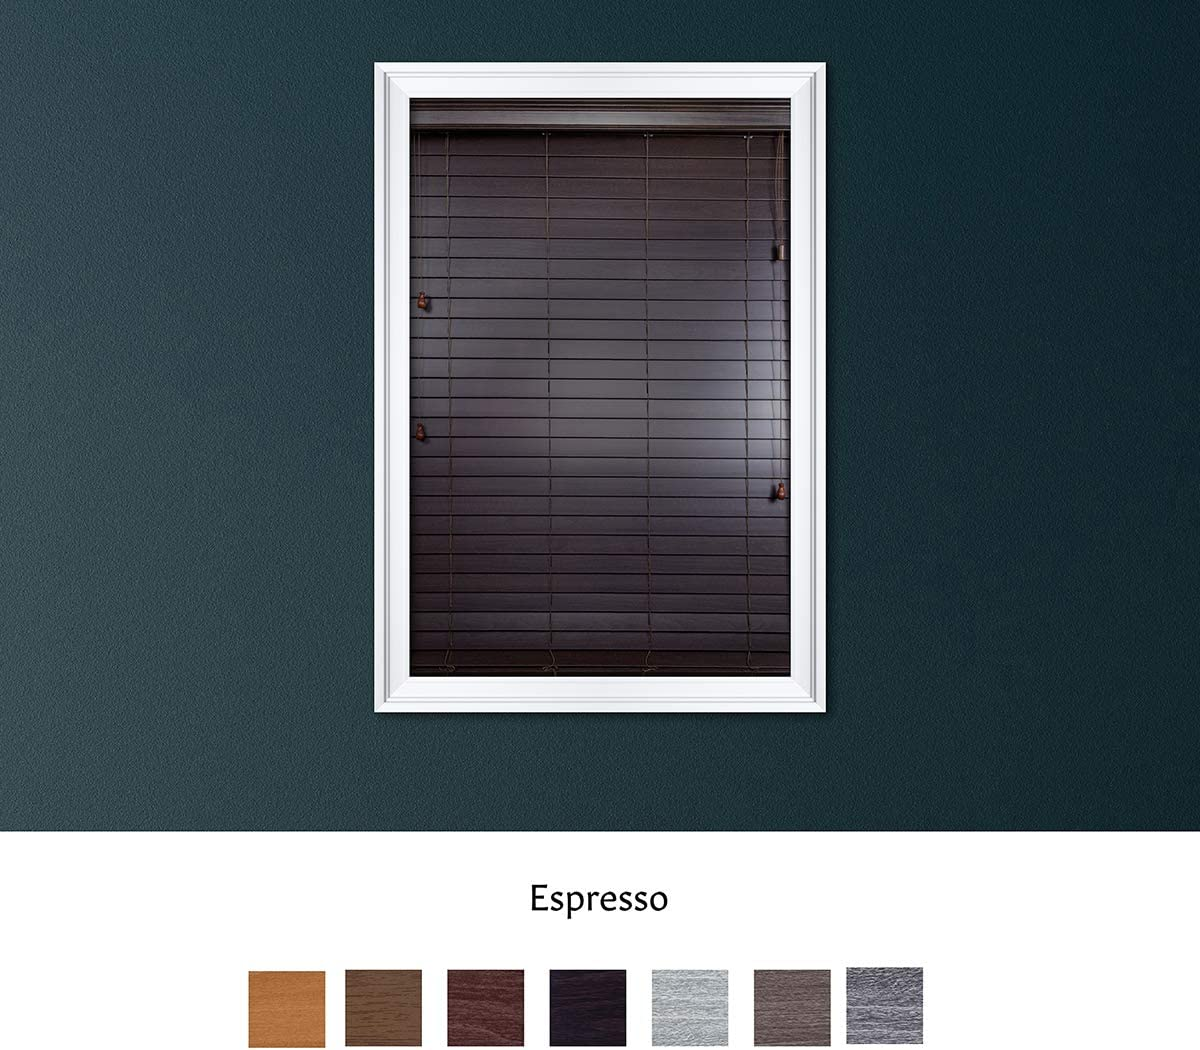 Luxr Blinds Custom Made Premium Faux Wood Horizontal Blinds W Easy Inside Mount Outside Mount Wood Blind – Size 68X35 Inch Wooden Color Espresso